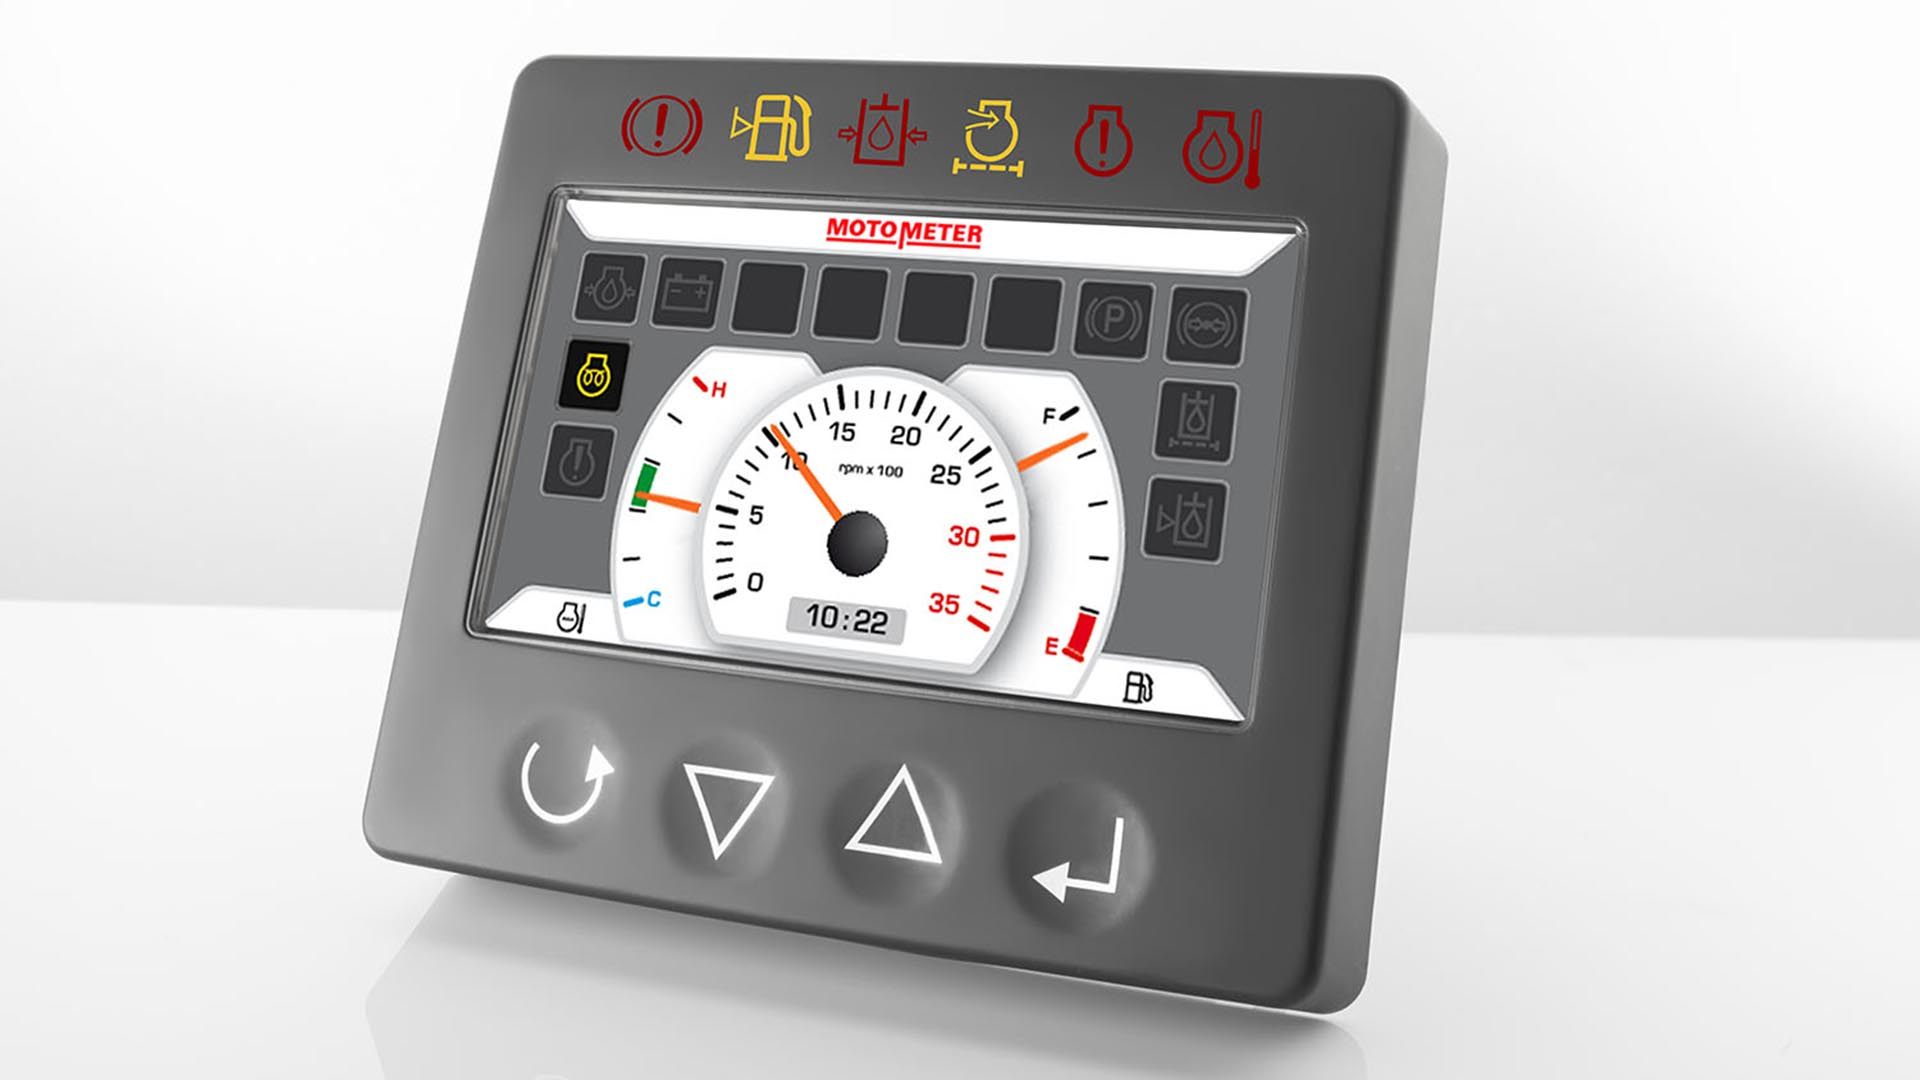 control panel of a tractor. industrial shot